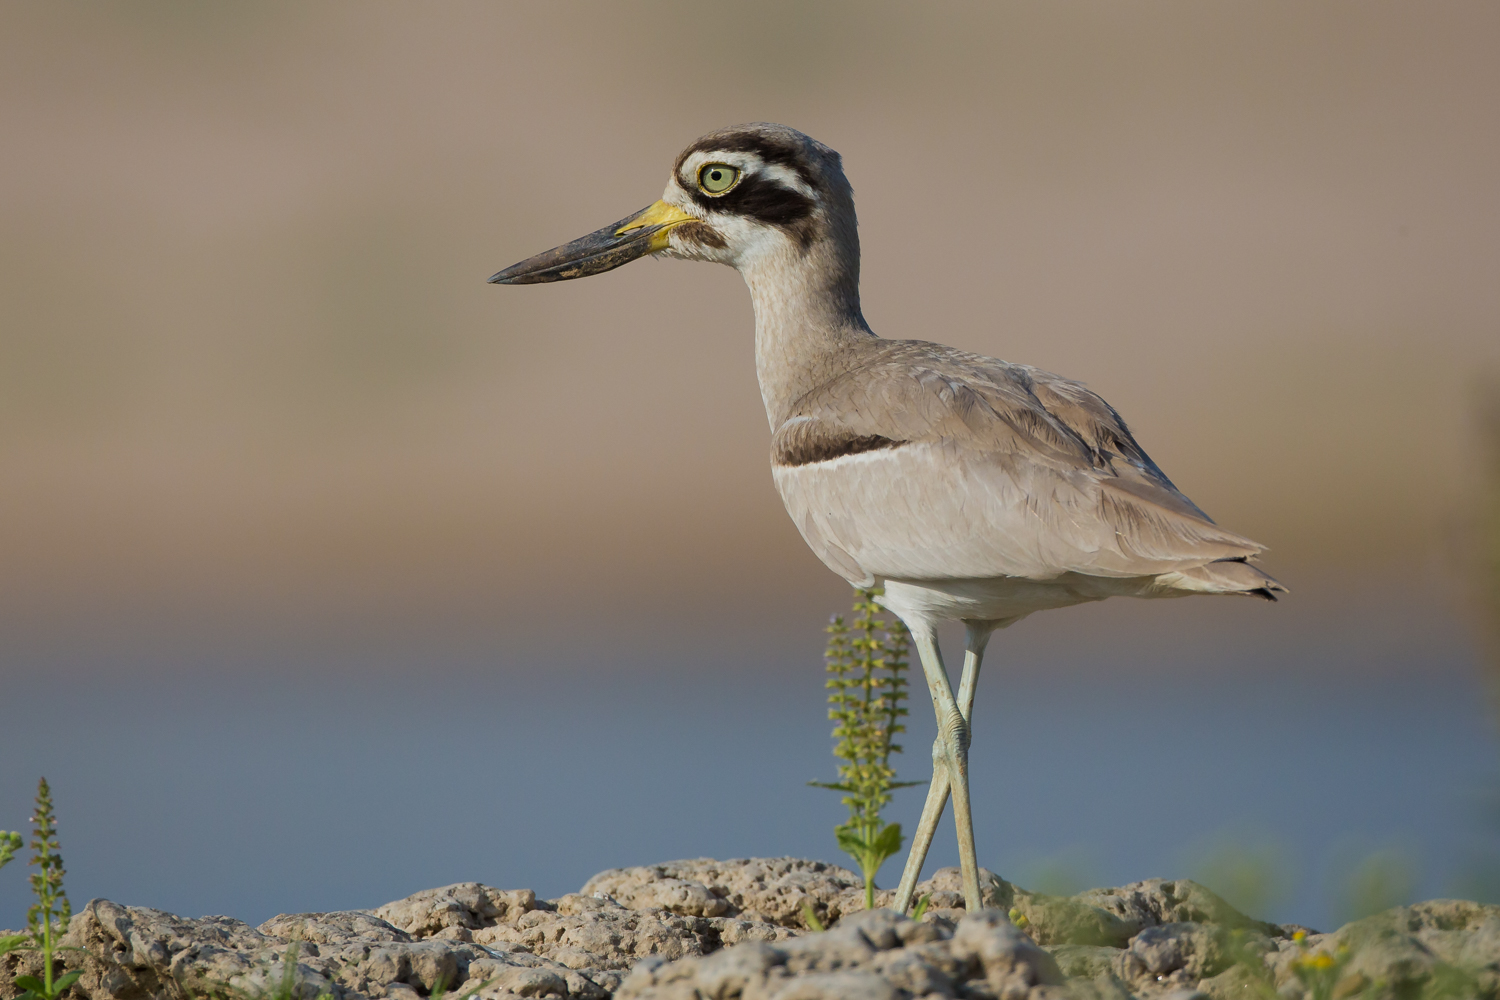 Great Thick-knee, curlew, birds of India, wildlife photography